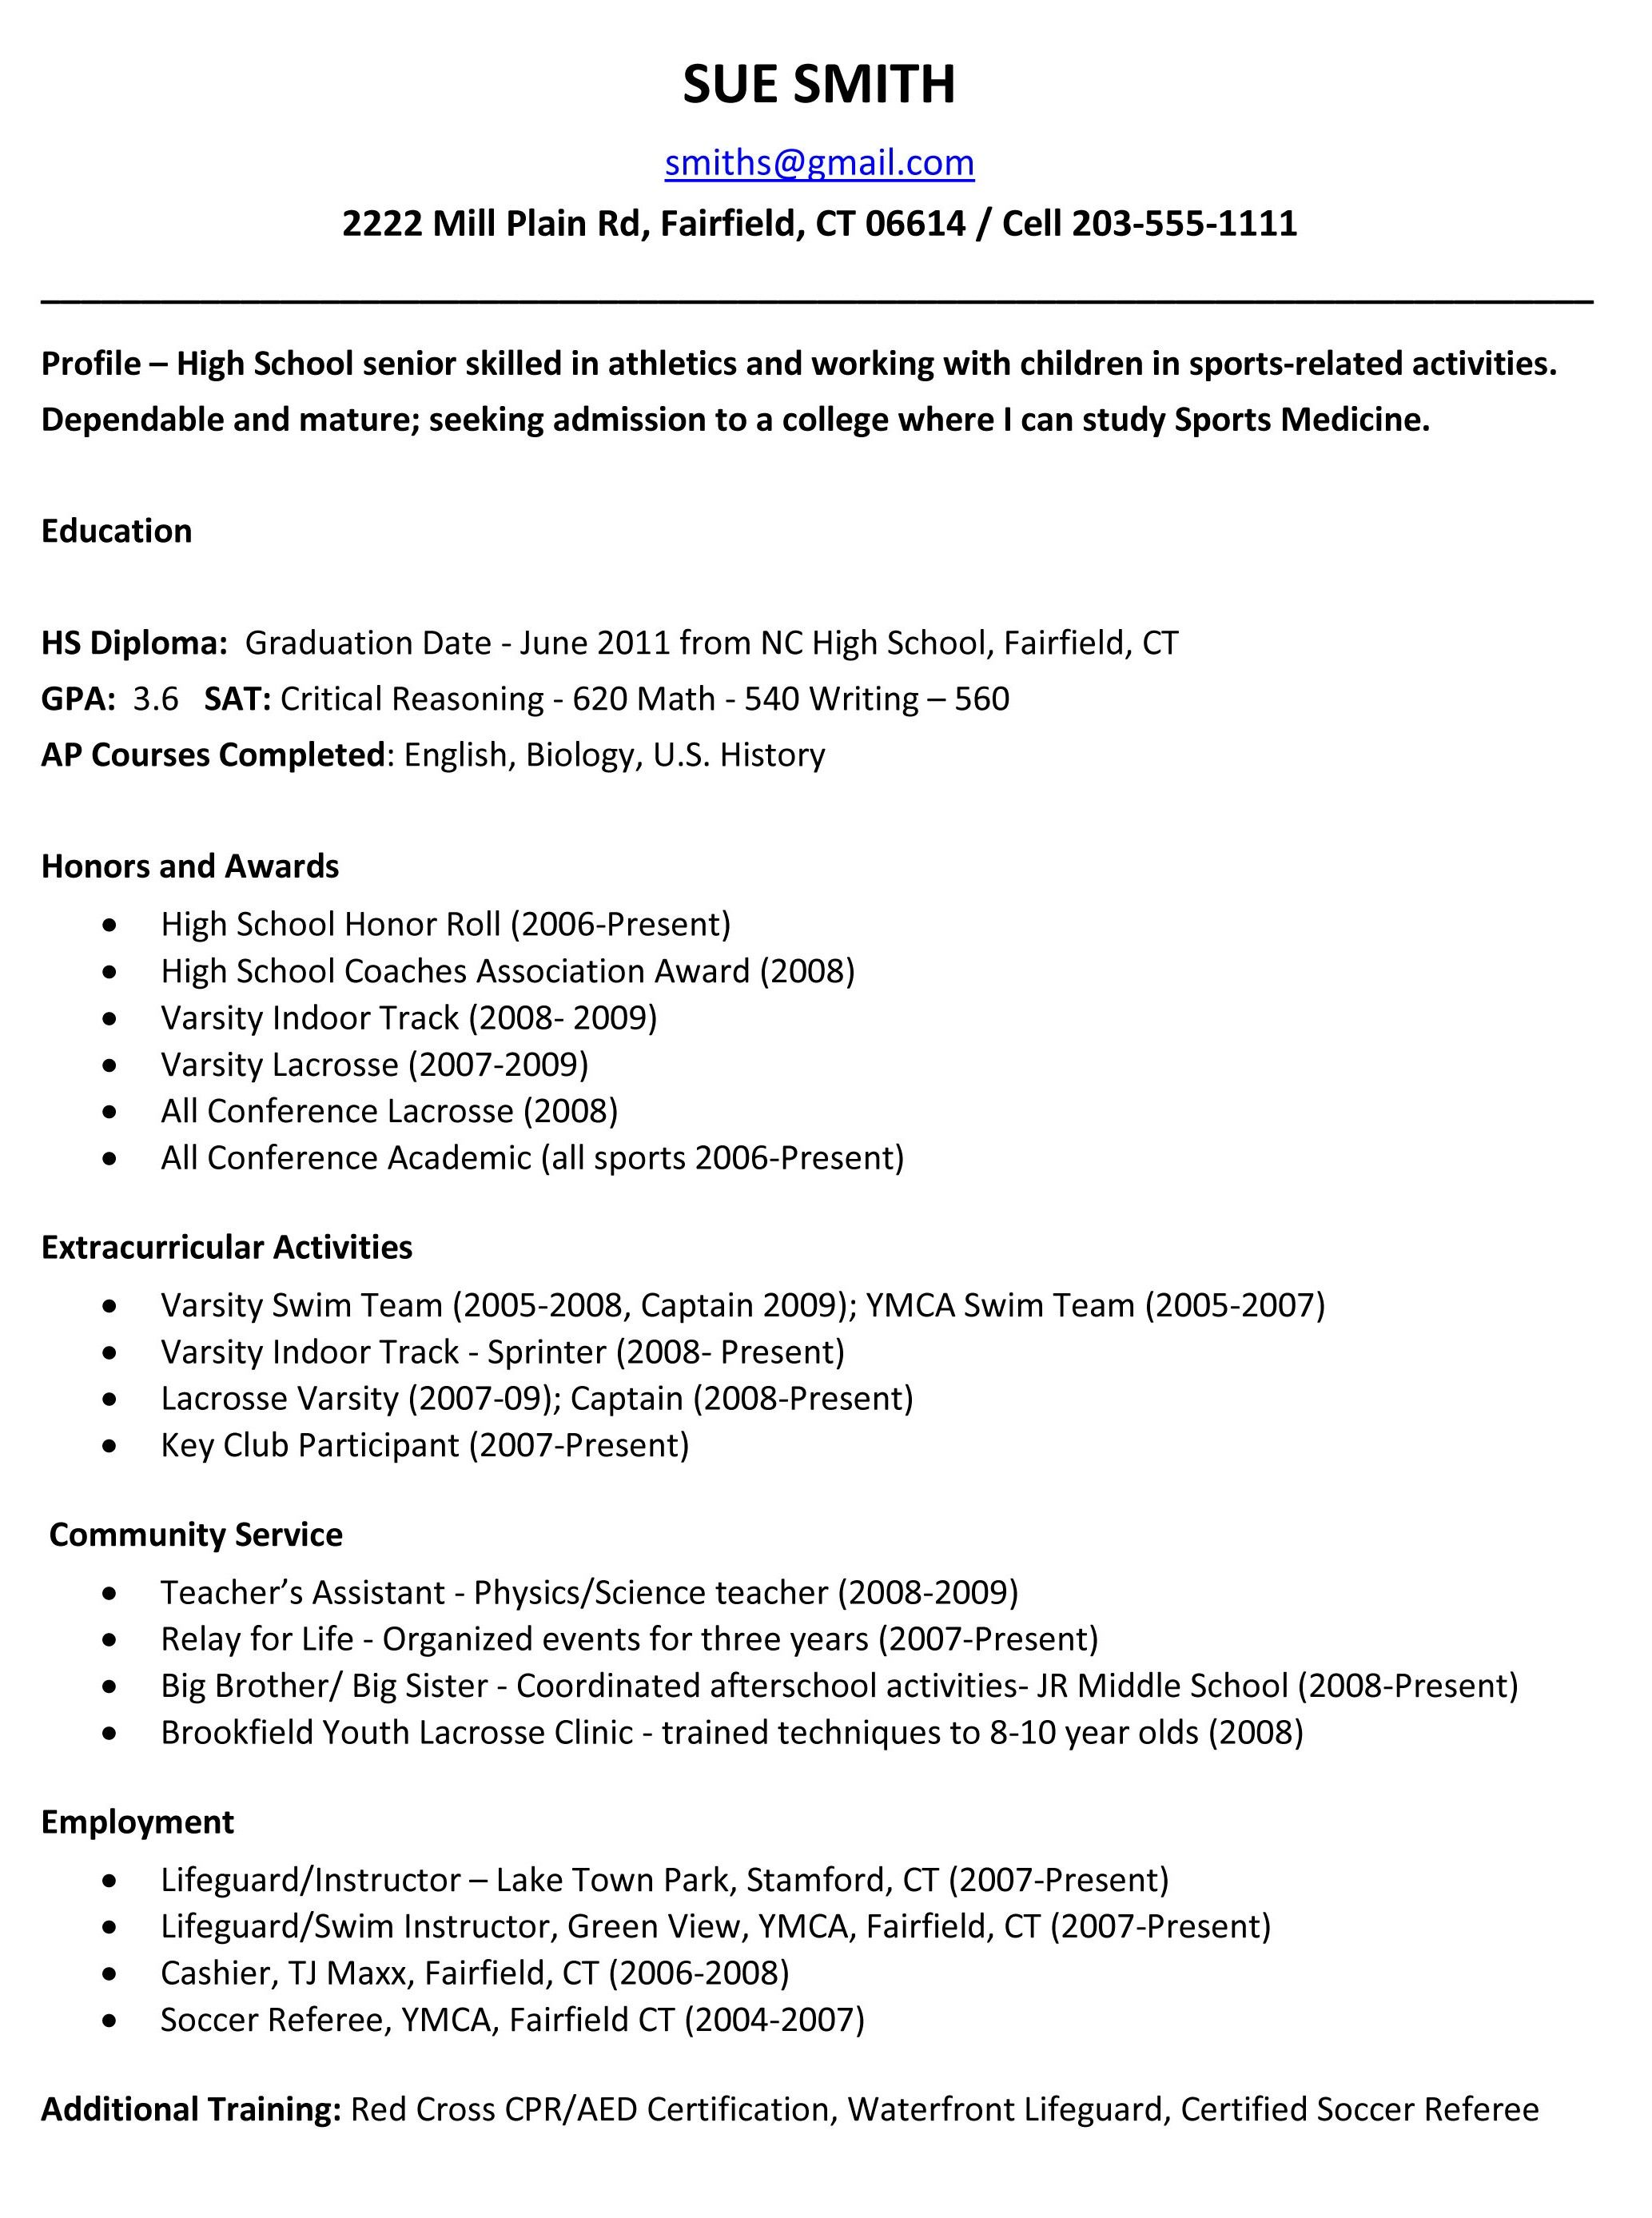 example resume for high school students for college applications school resume templateregularmidwesternerscom regularmidwesterners - Resume High School Template